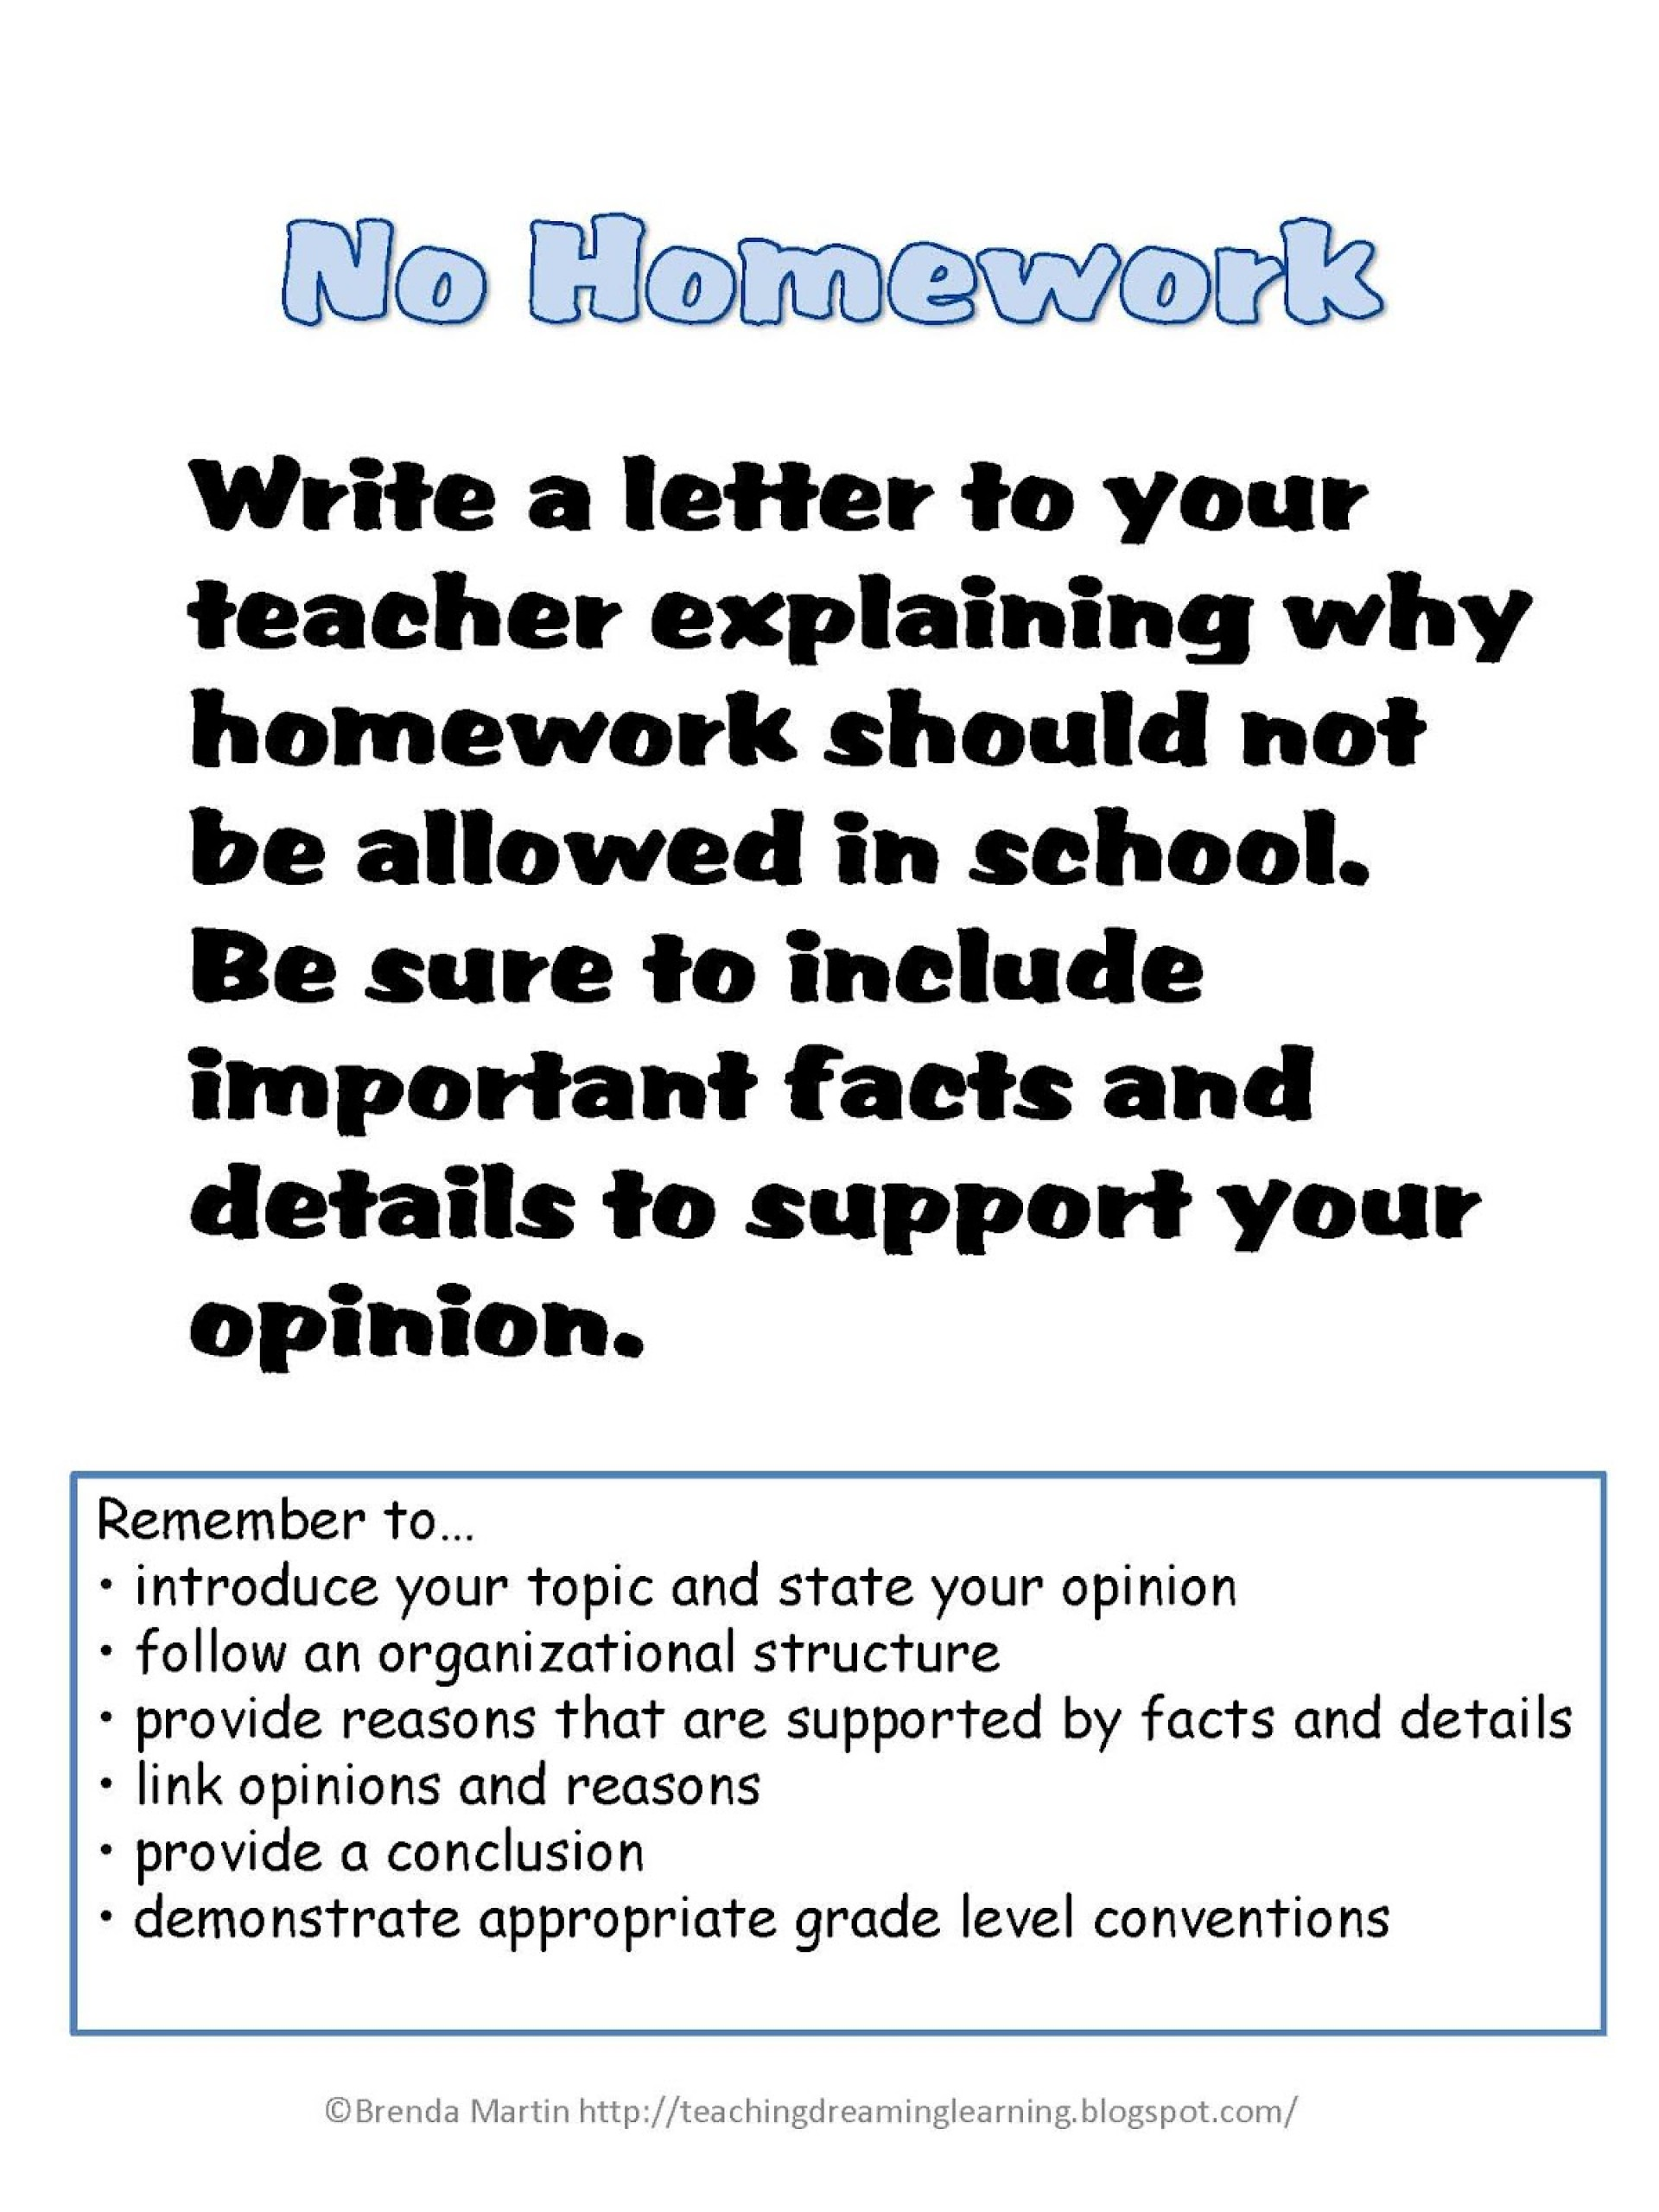 003 Essay Example Persuasive For Sixth Grade Custom Paper Service Ruhomeworkkofd Topics Students Writing1 Pa Argumentative 6th Graders Speech Surprising Reflective Narrative Writing Prompts Science 1920